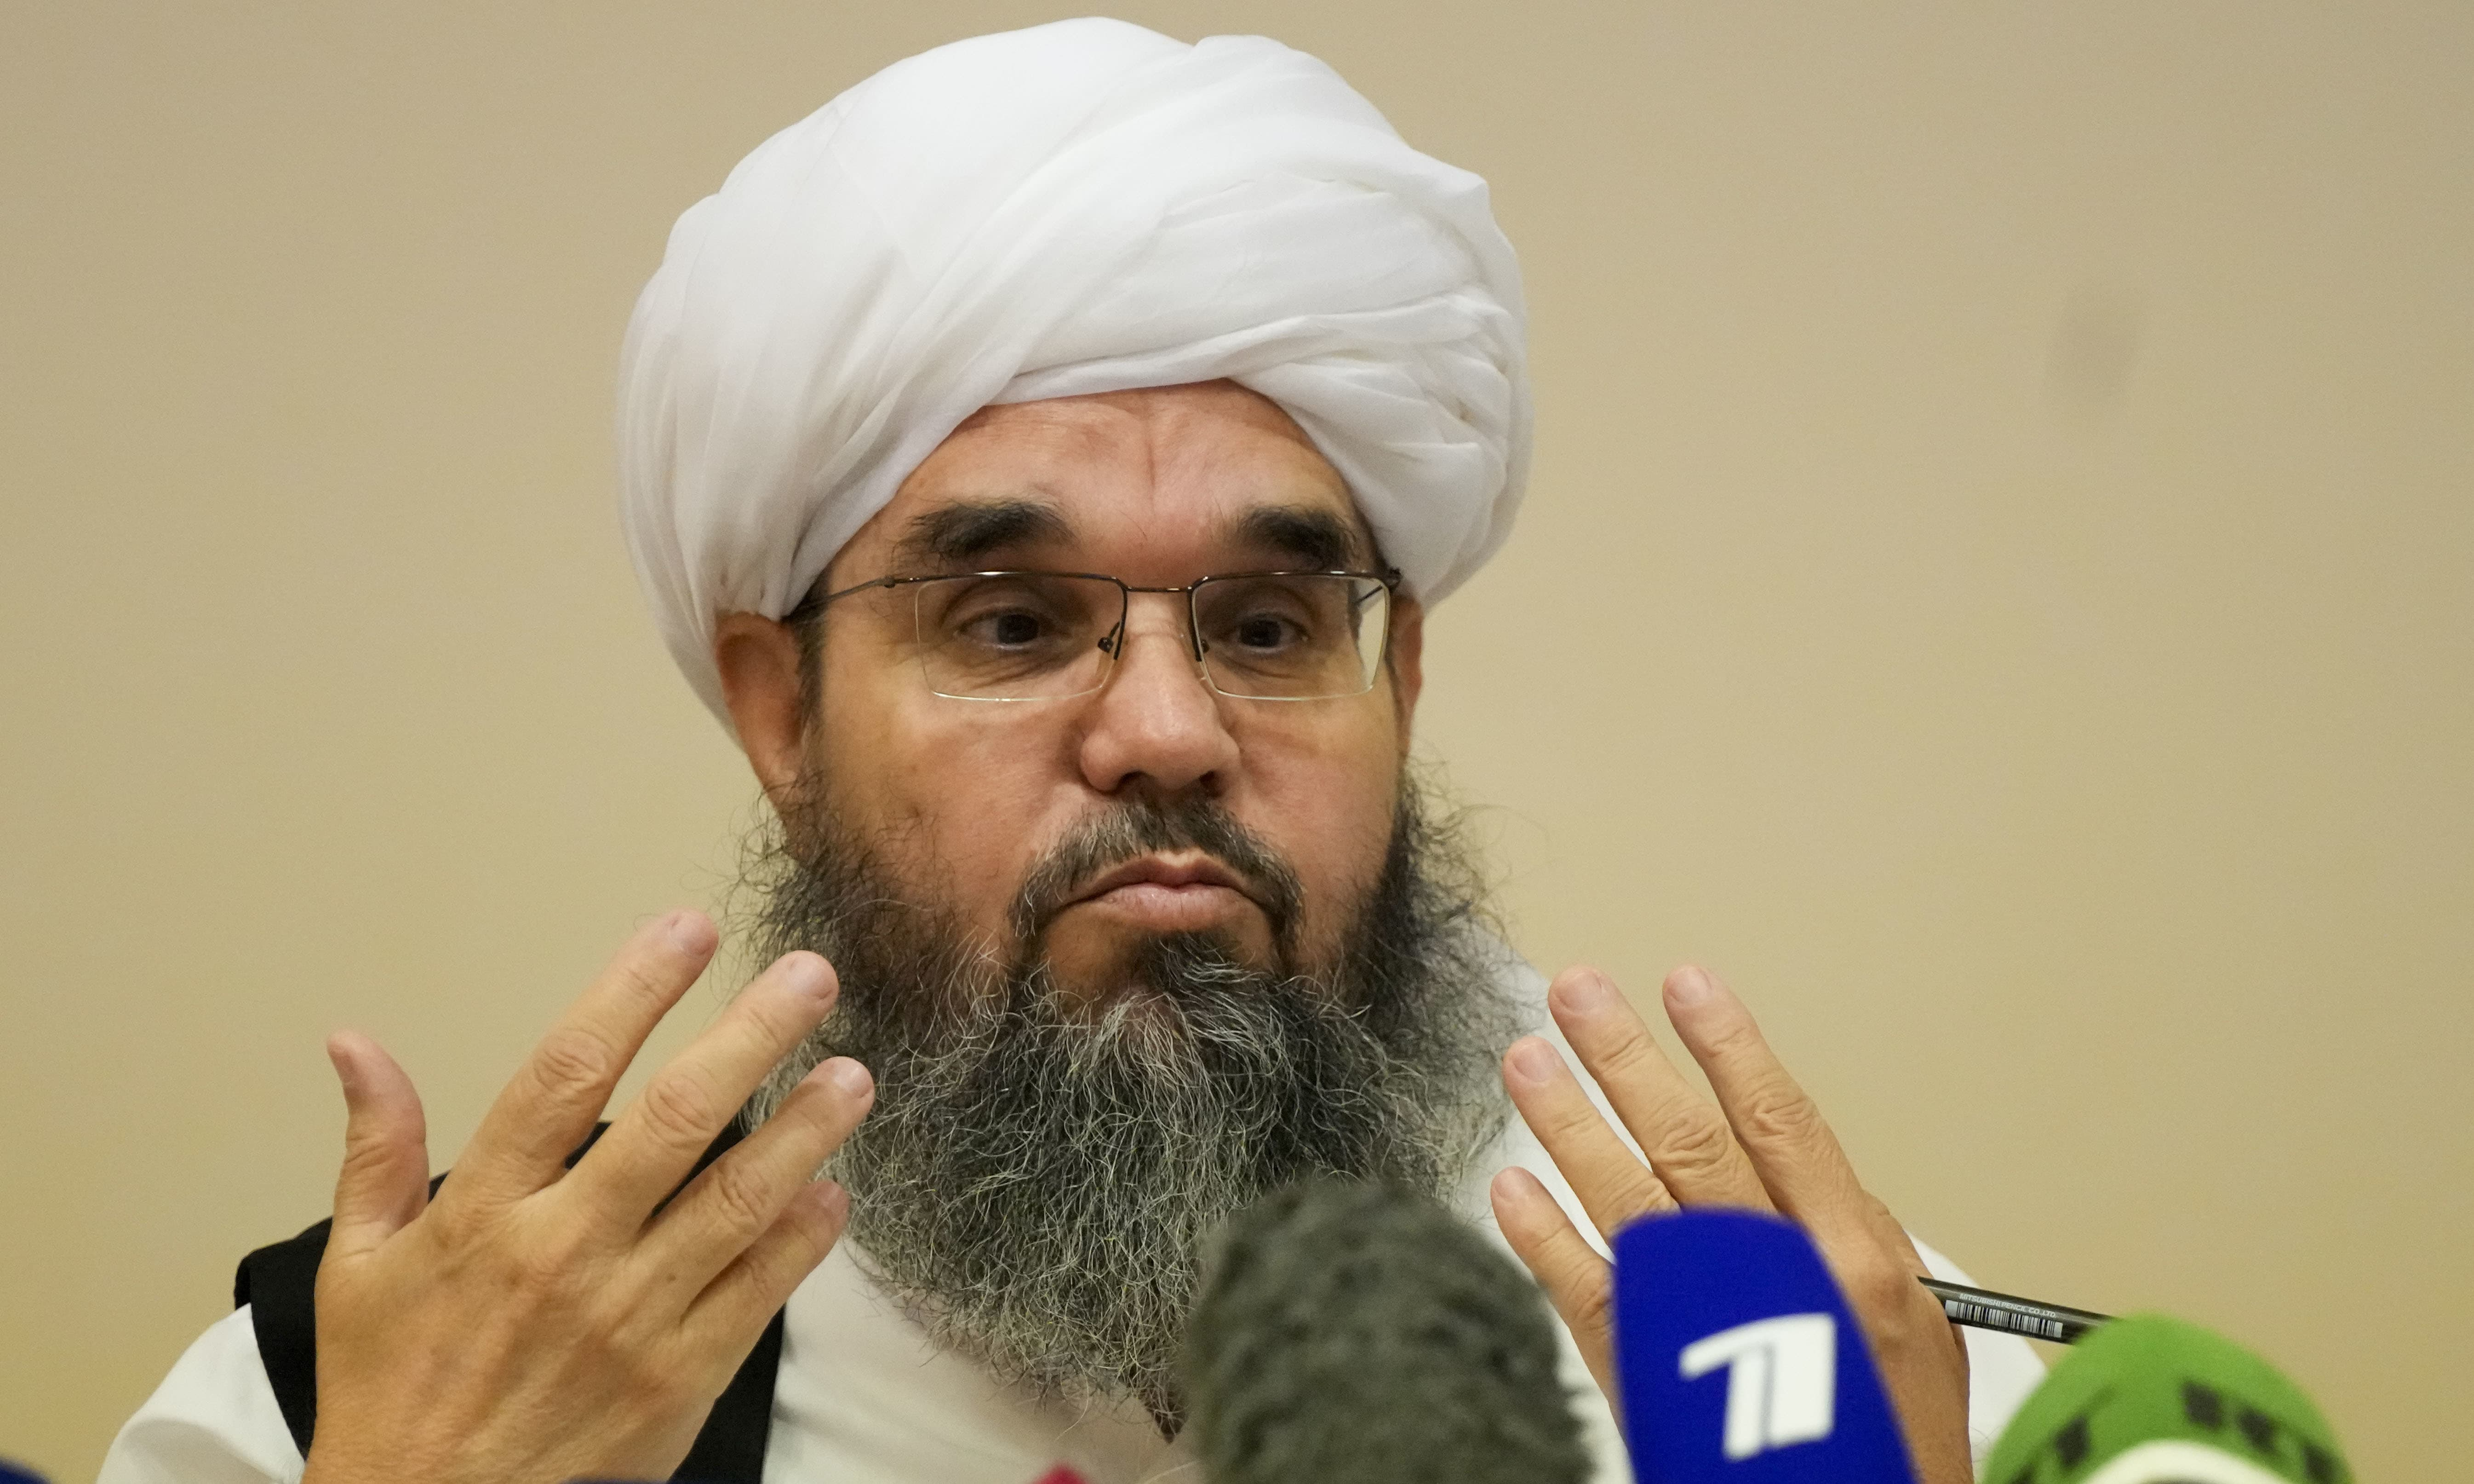 Mawlawi Shahabuddin Dilawar, member of political delegation from the Afghan Taliban's movement gestures during a news conference in Moscow, Russia on Friday. — AP